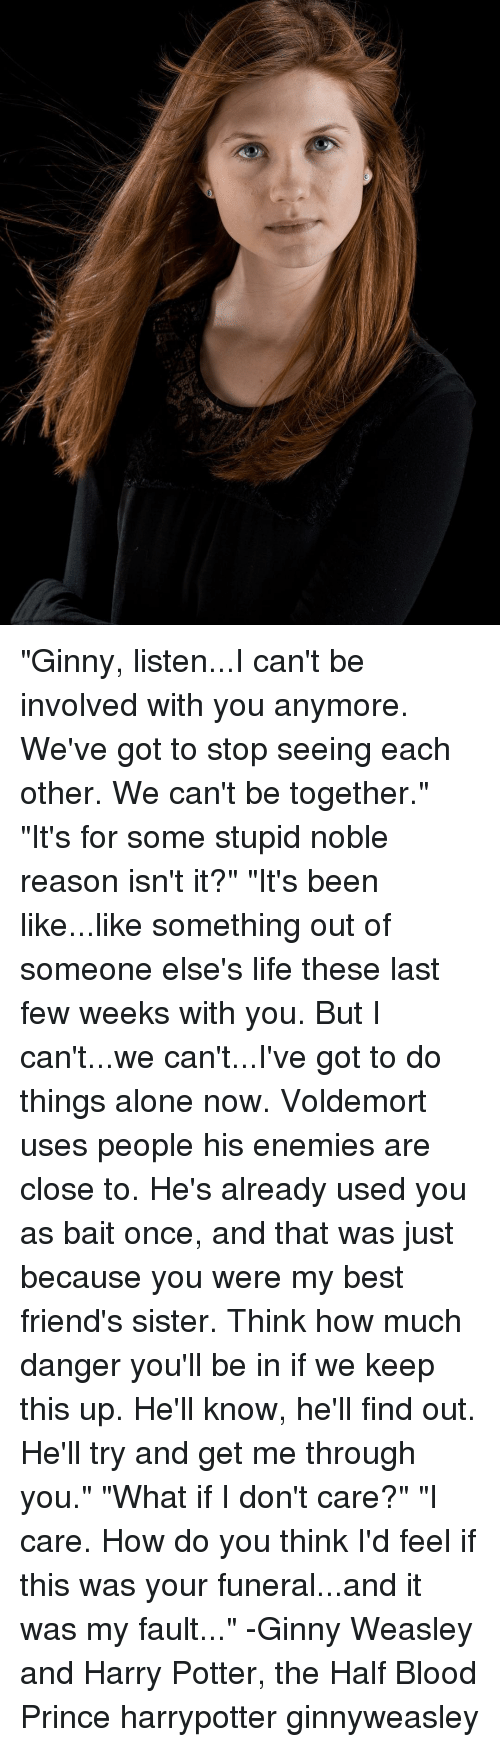 "harried: ""Ginny, listen...I can't be involved with you anymore. We've got to stop seeing each other. We can't be together."" ""It's for some stupid noble reason isn't it?"" ""It's been like...like something out of someone else's life these last few weeks with you. But I can't...we can't...I've got to do things alone now. Voldemort uses people his enemies are close to. He's already used you as bait once, and that was just because you were my best friend's sister. Think how much danger you'll be in if we keep this up. He'll know, he'll find out. He'll try and get me through you."" ""What if I don't care?"" ""I care. How do you think I'd feel if this was your funeral...and it was my fault..."" -Ginny Weasley and Harry Potter, the Half Blood Prince harrypotter ginnyweasley"